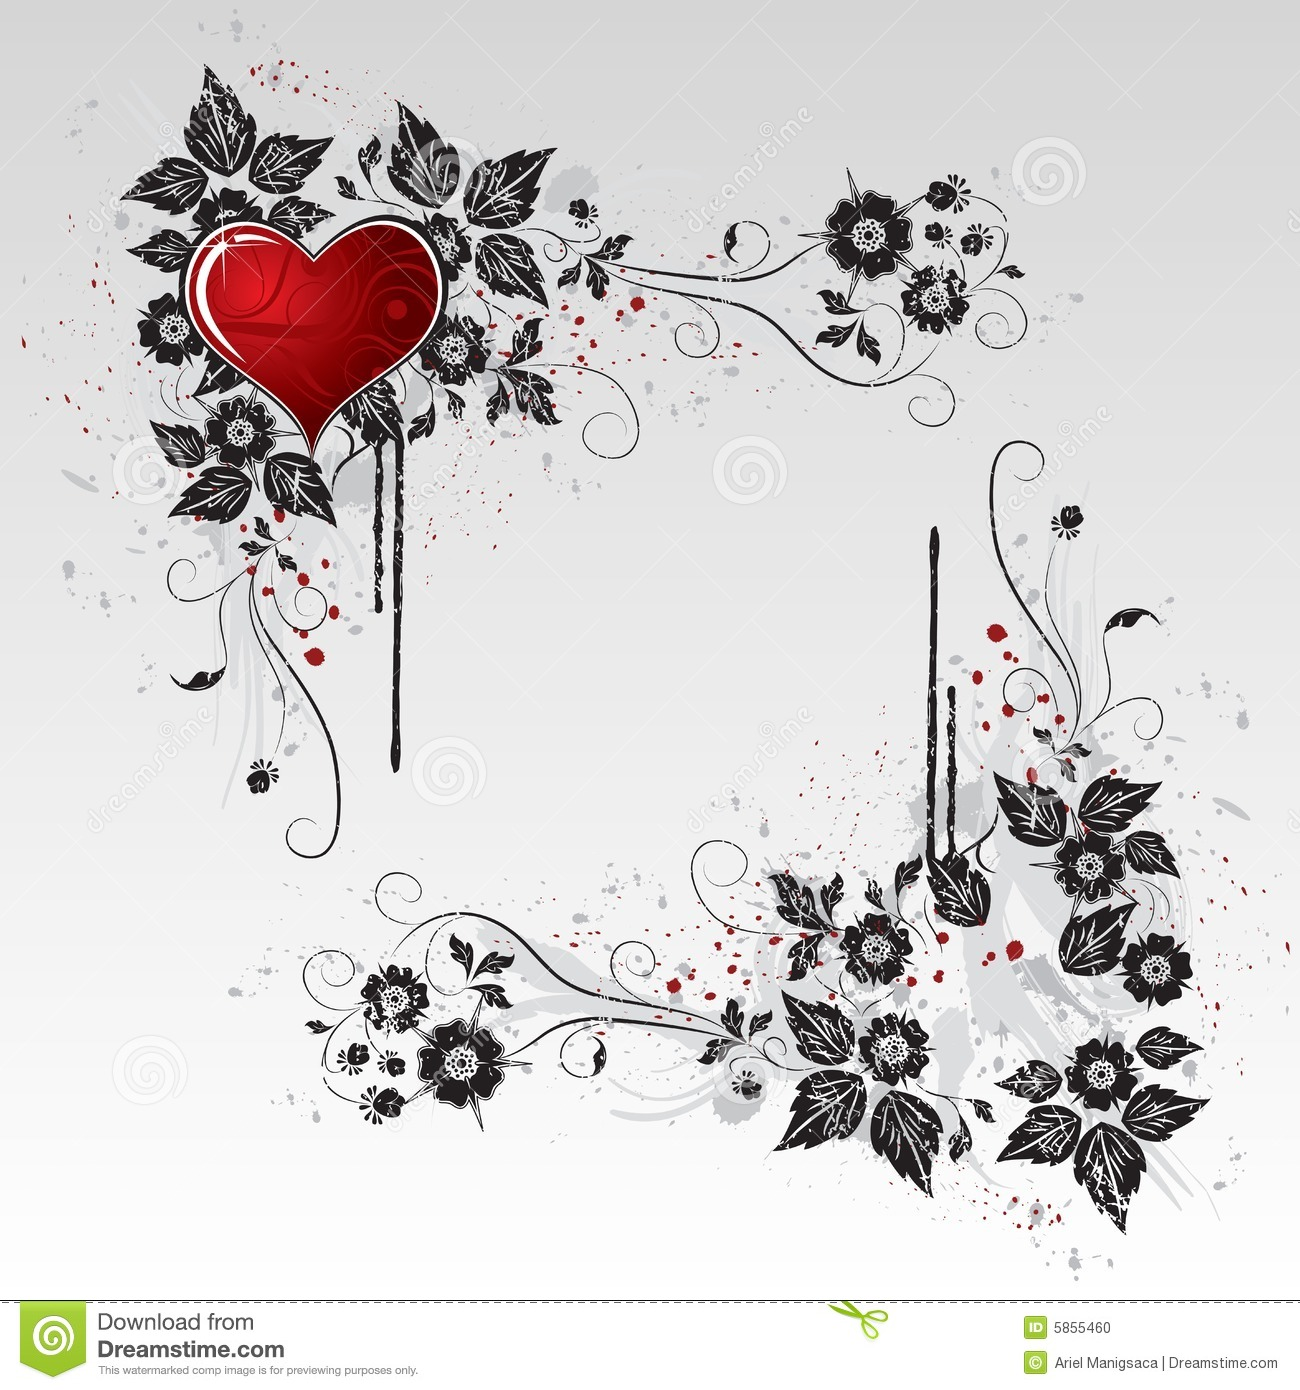 Valentines Day 3d Wallpaper Red Heart And Black Vines And Leaves Stock Photo Image